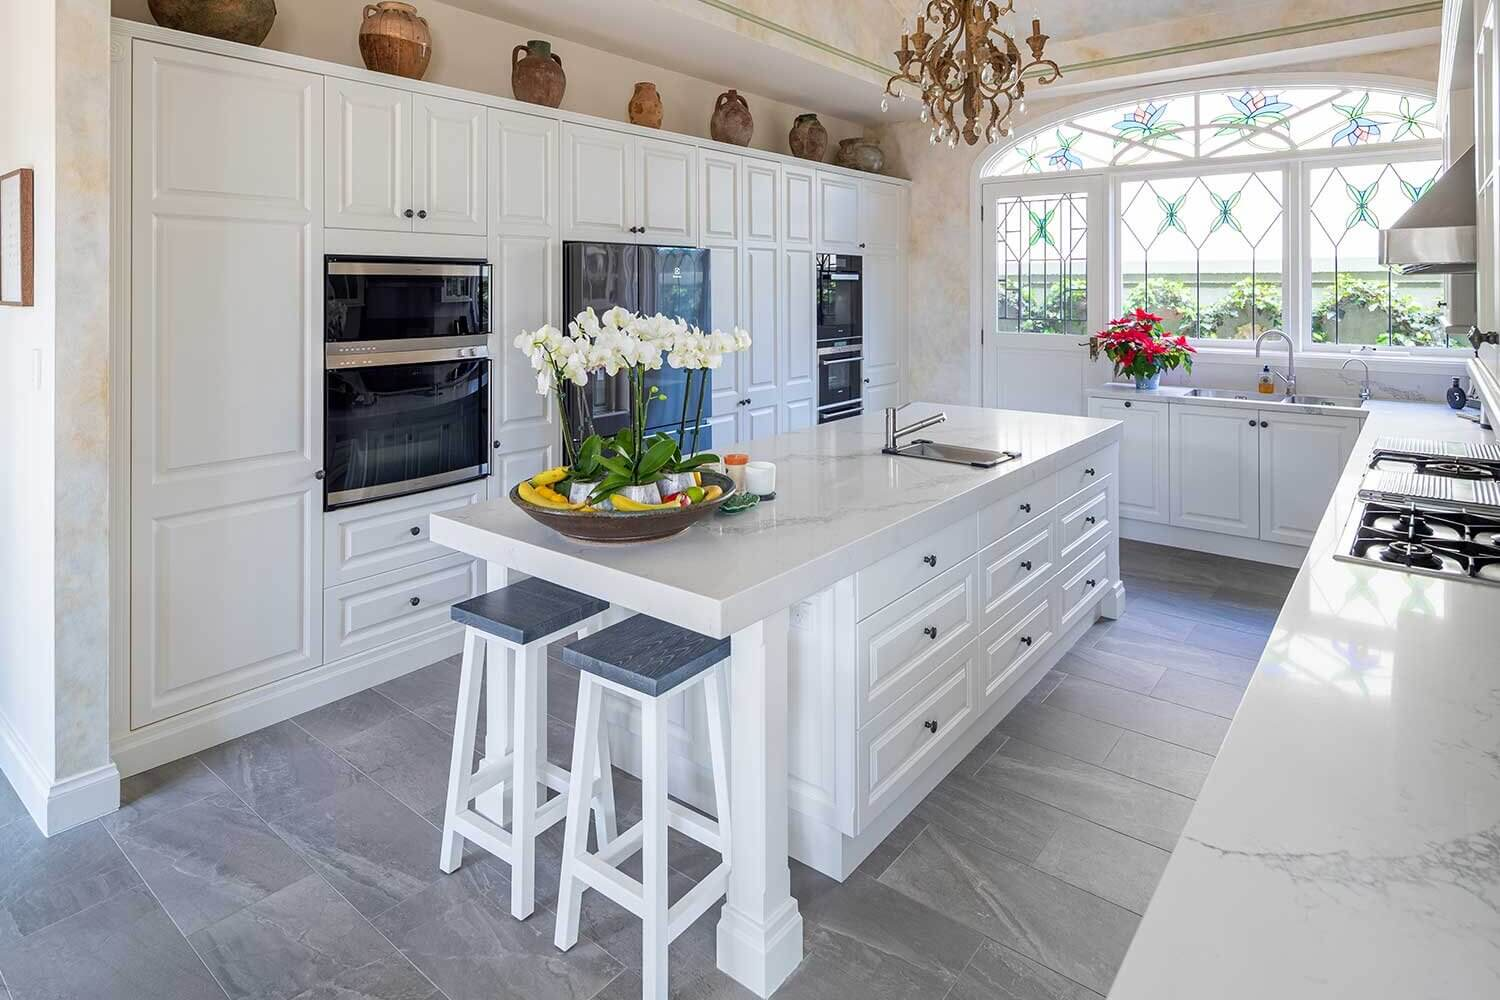 duffys-forest-kitchen-cabinets